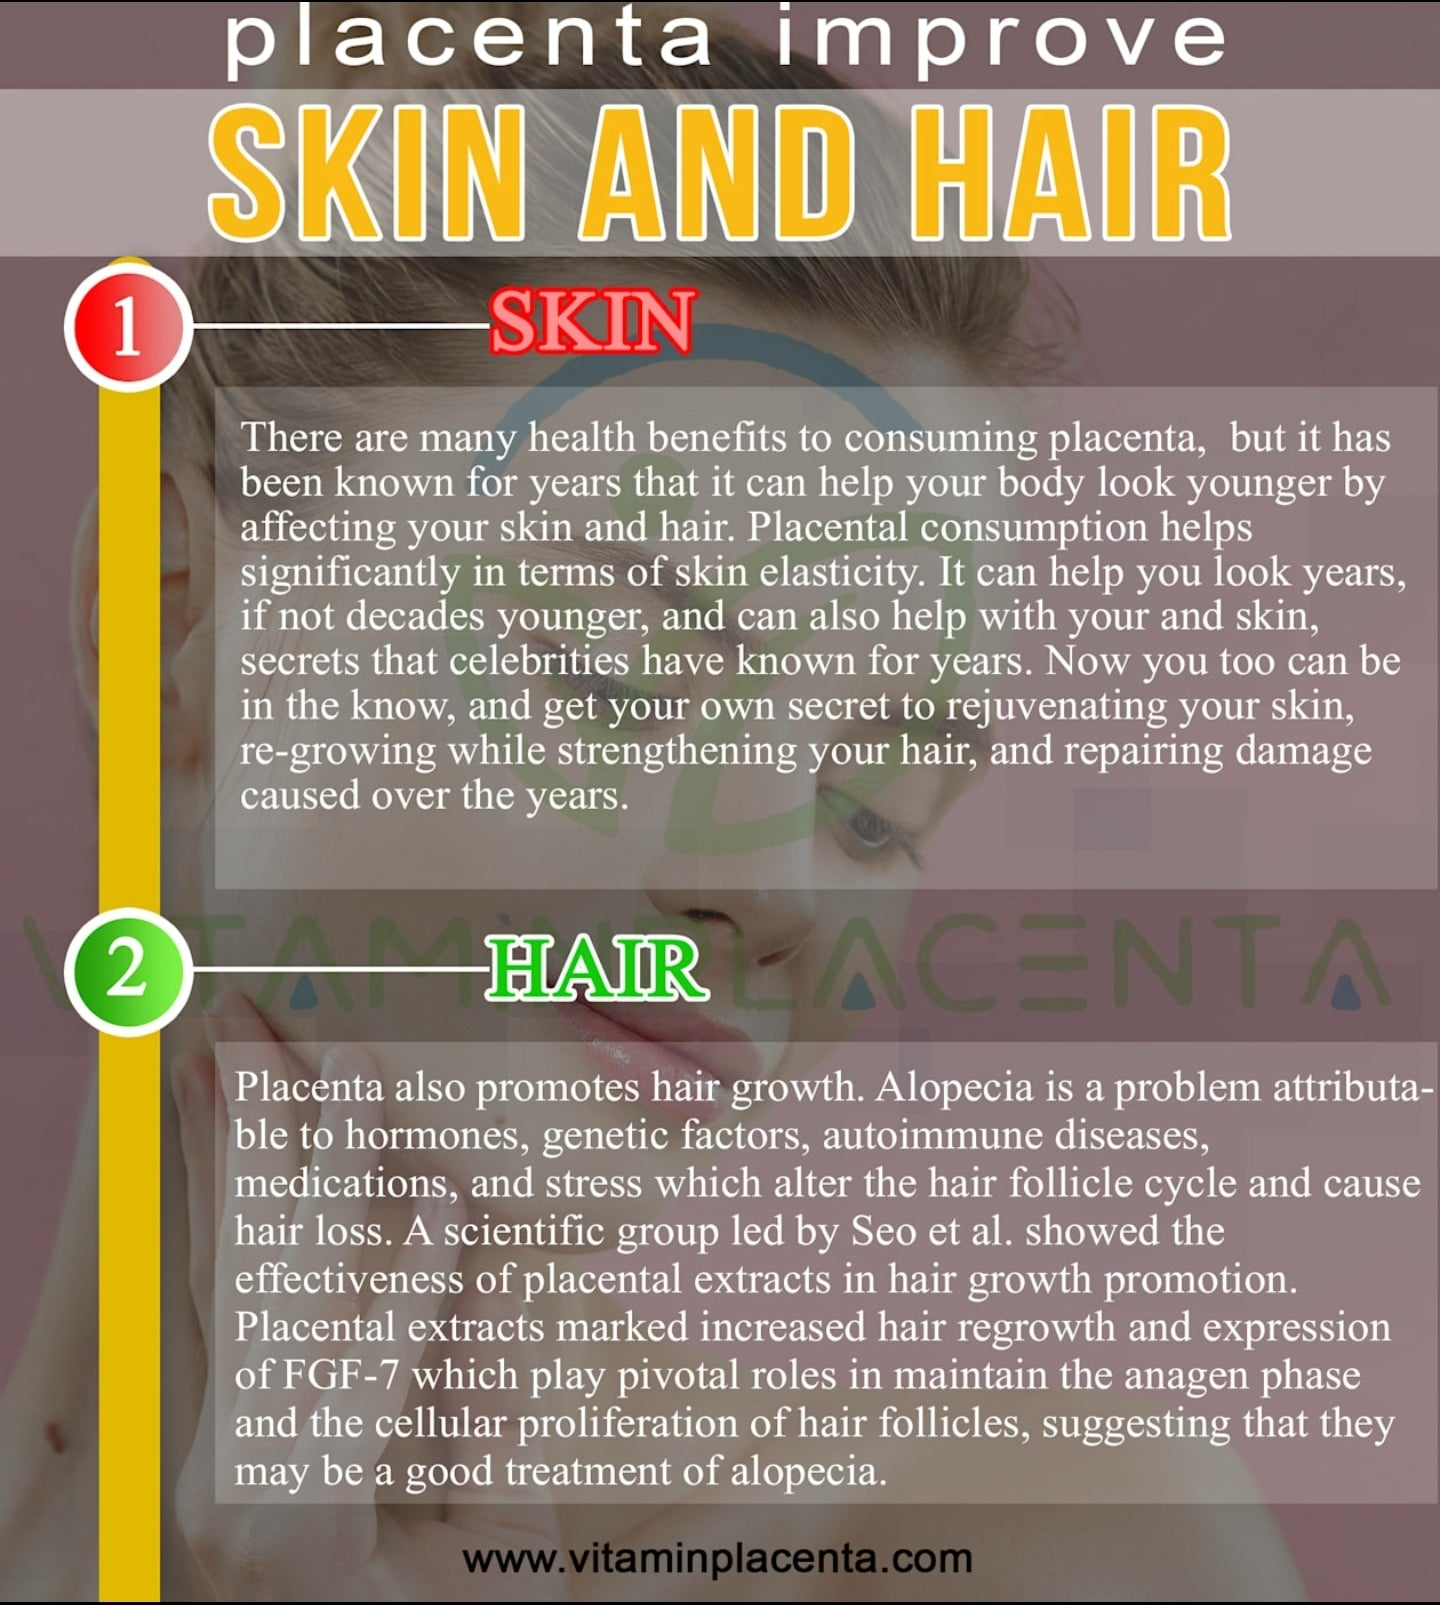 Placenta improves skin and hair